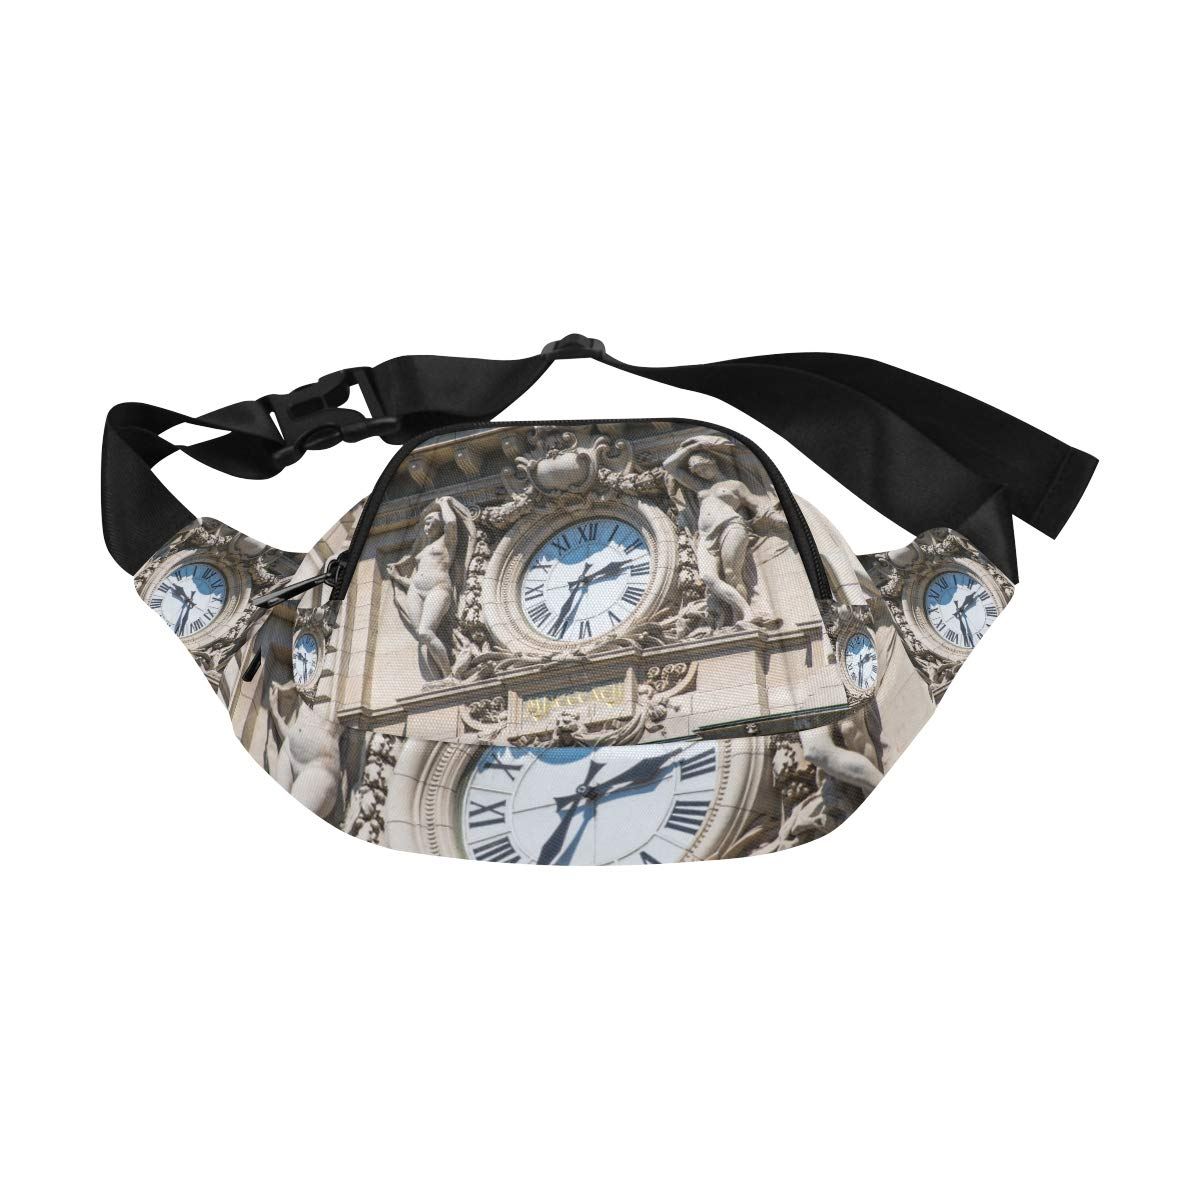 Old Clock In The Old Town Fenny Packs Waist Bags Adjustable Belt Waterproof Nylon Travel Running Sport Vacation Party For Men Women Boys Girls Kids